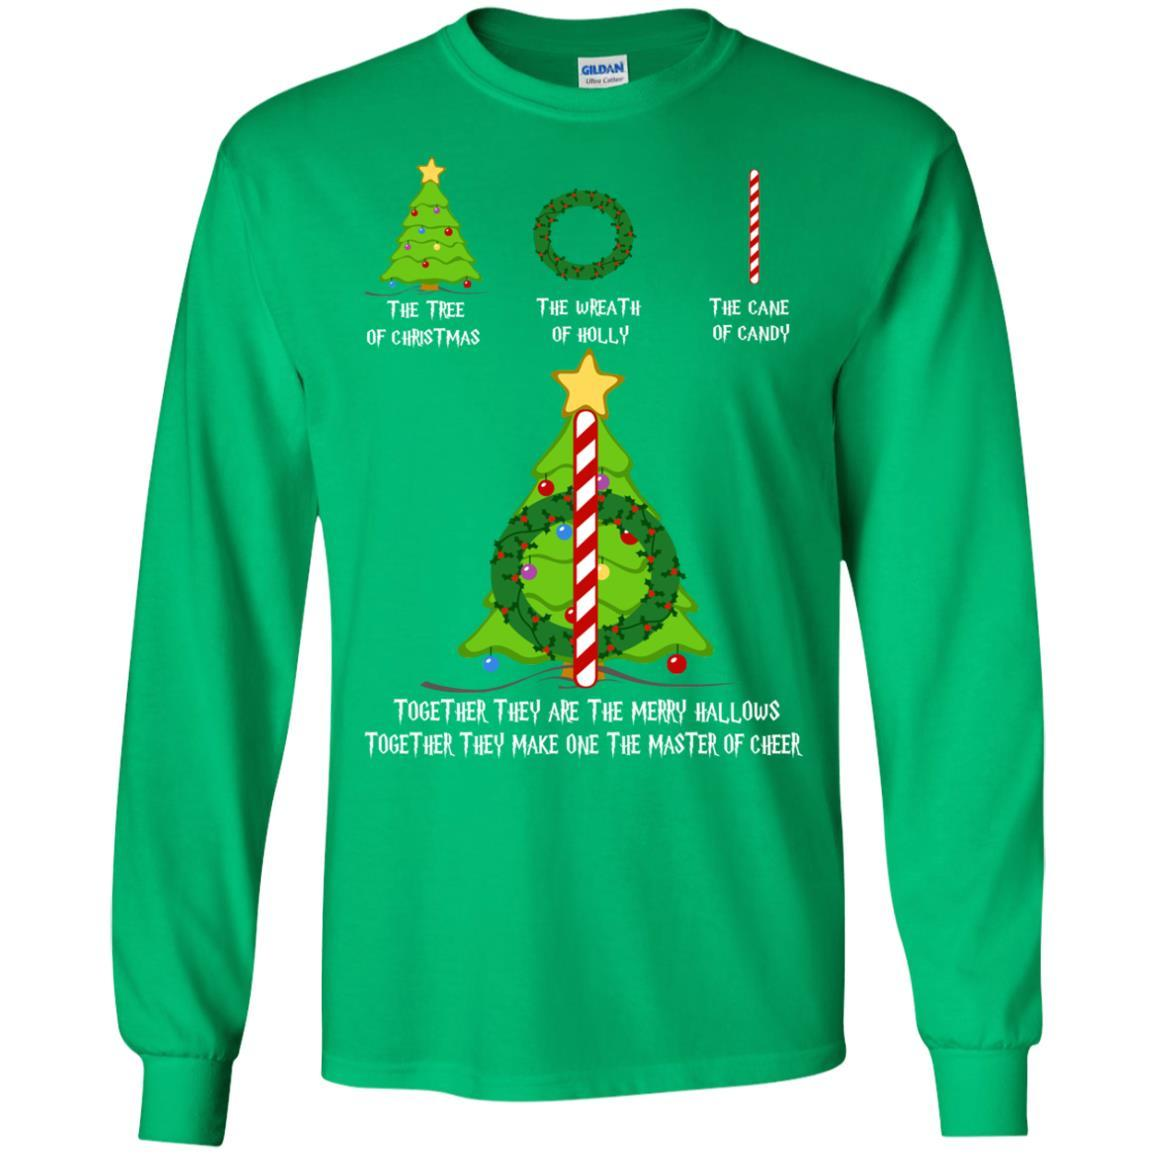 harry potter the tree of christmas the wreath of holly the cane of candy sweater t shirts hoodie